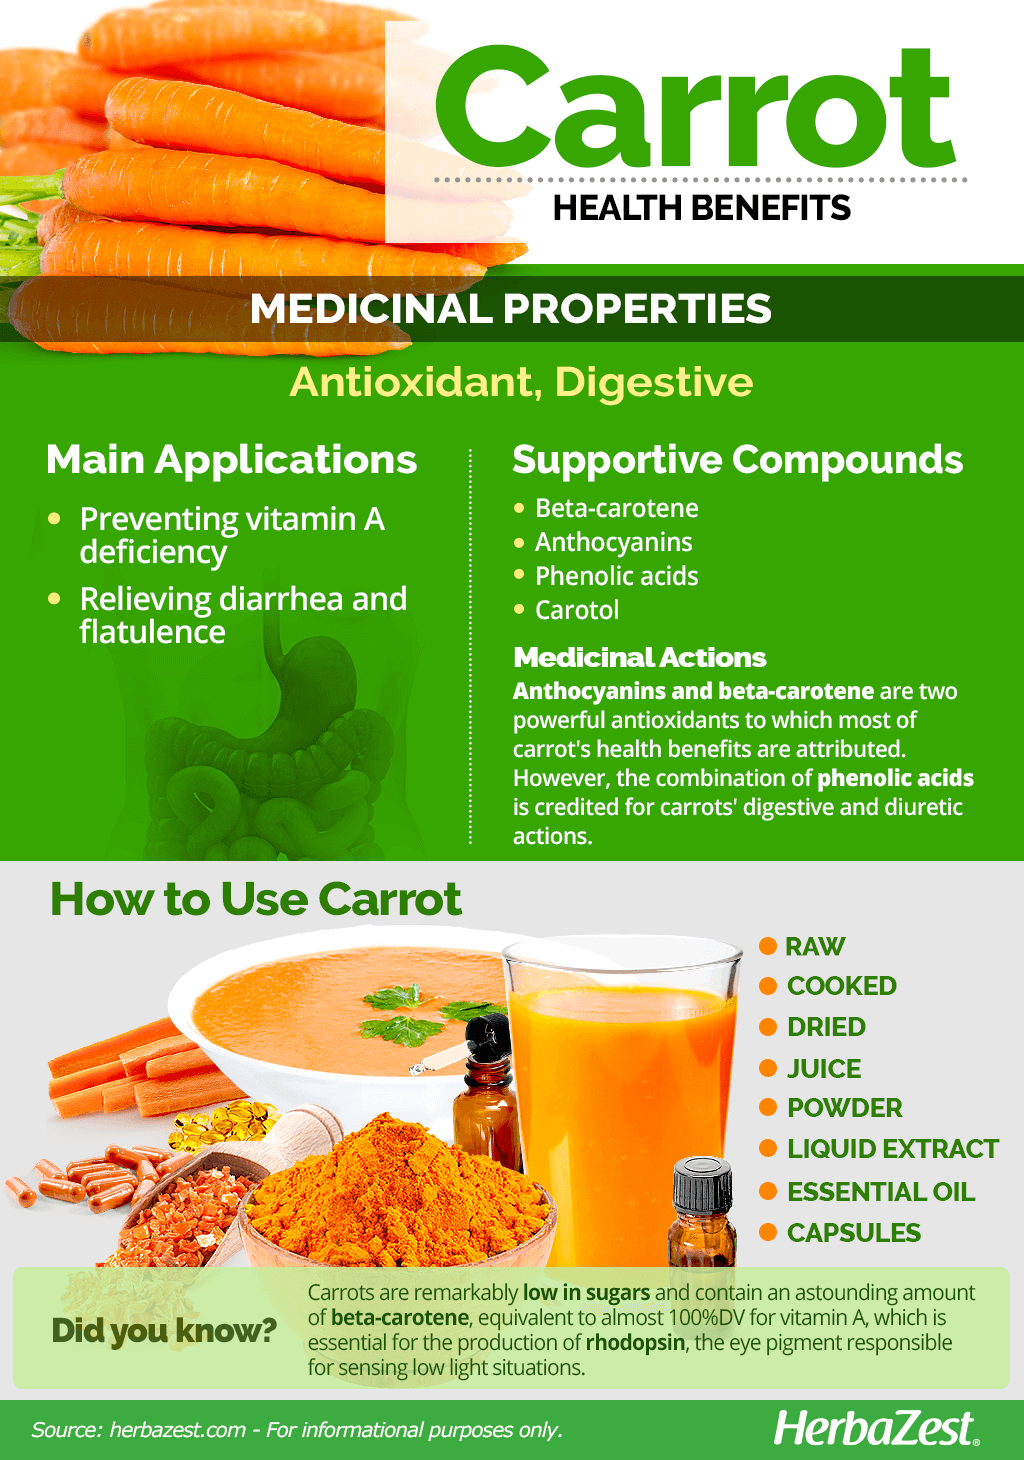 All About Carrot